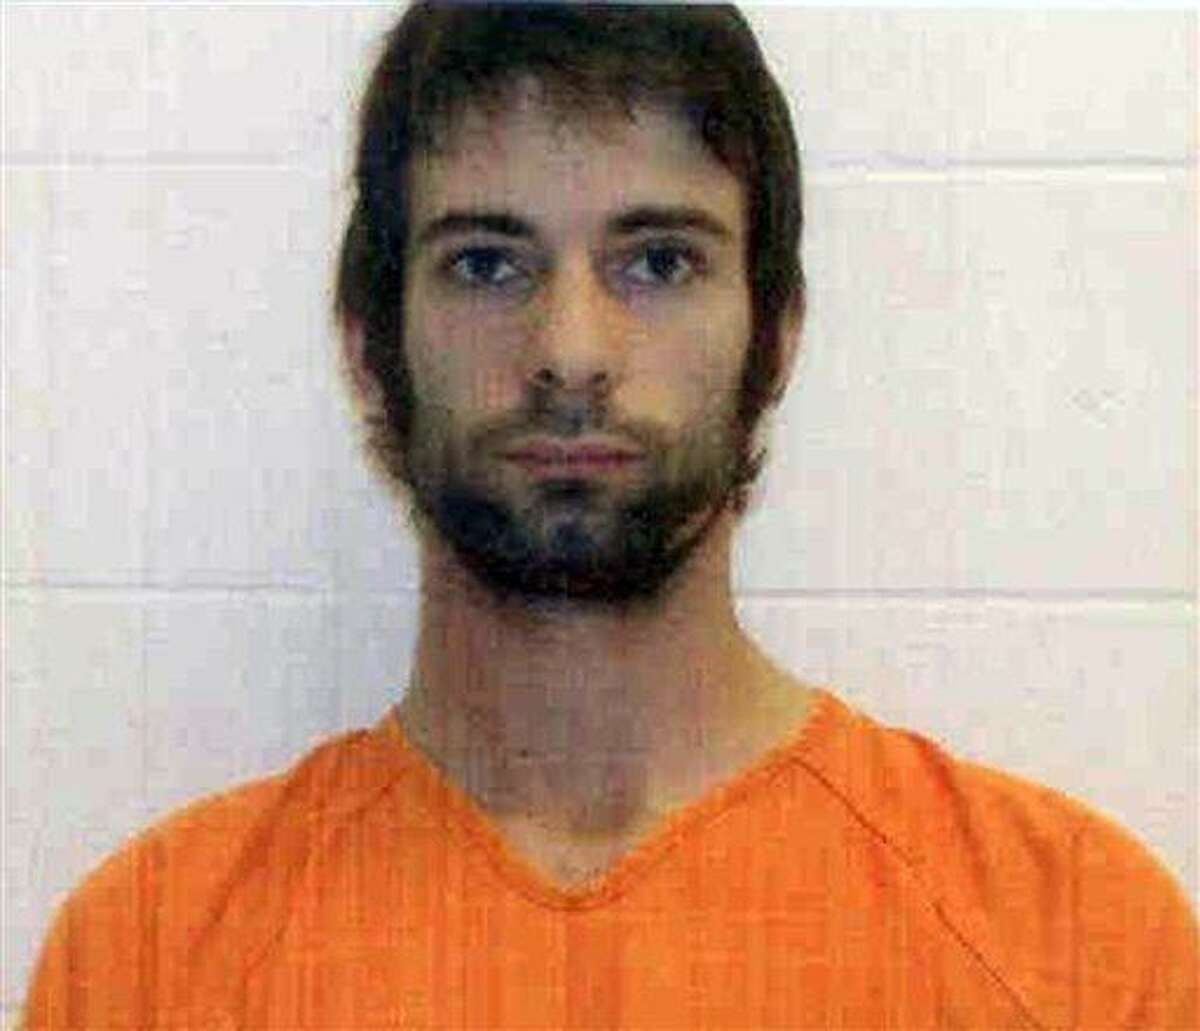 FILE - This undated file photo provided by the Erath County Sheriff's Office shows Eddie Ray Routh, who was charged with killing former Navy SEAL and